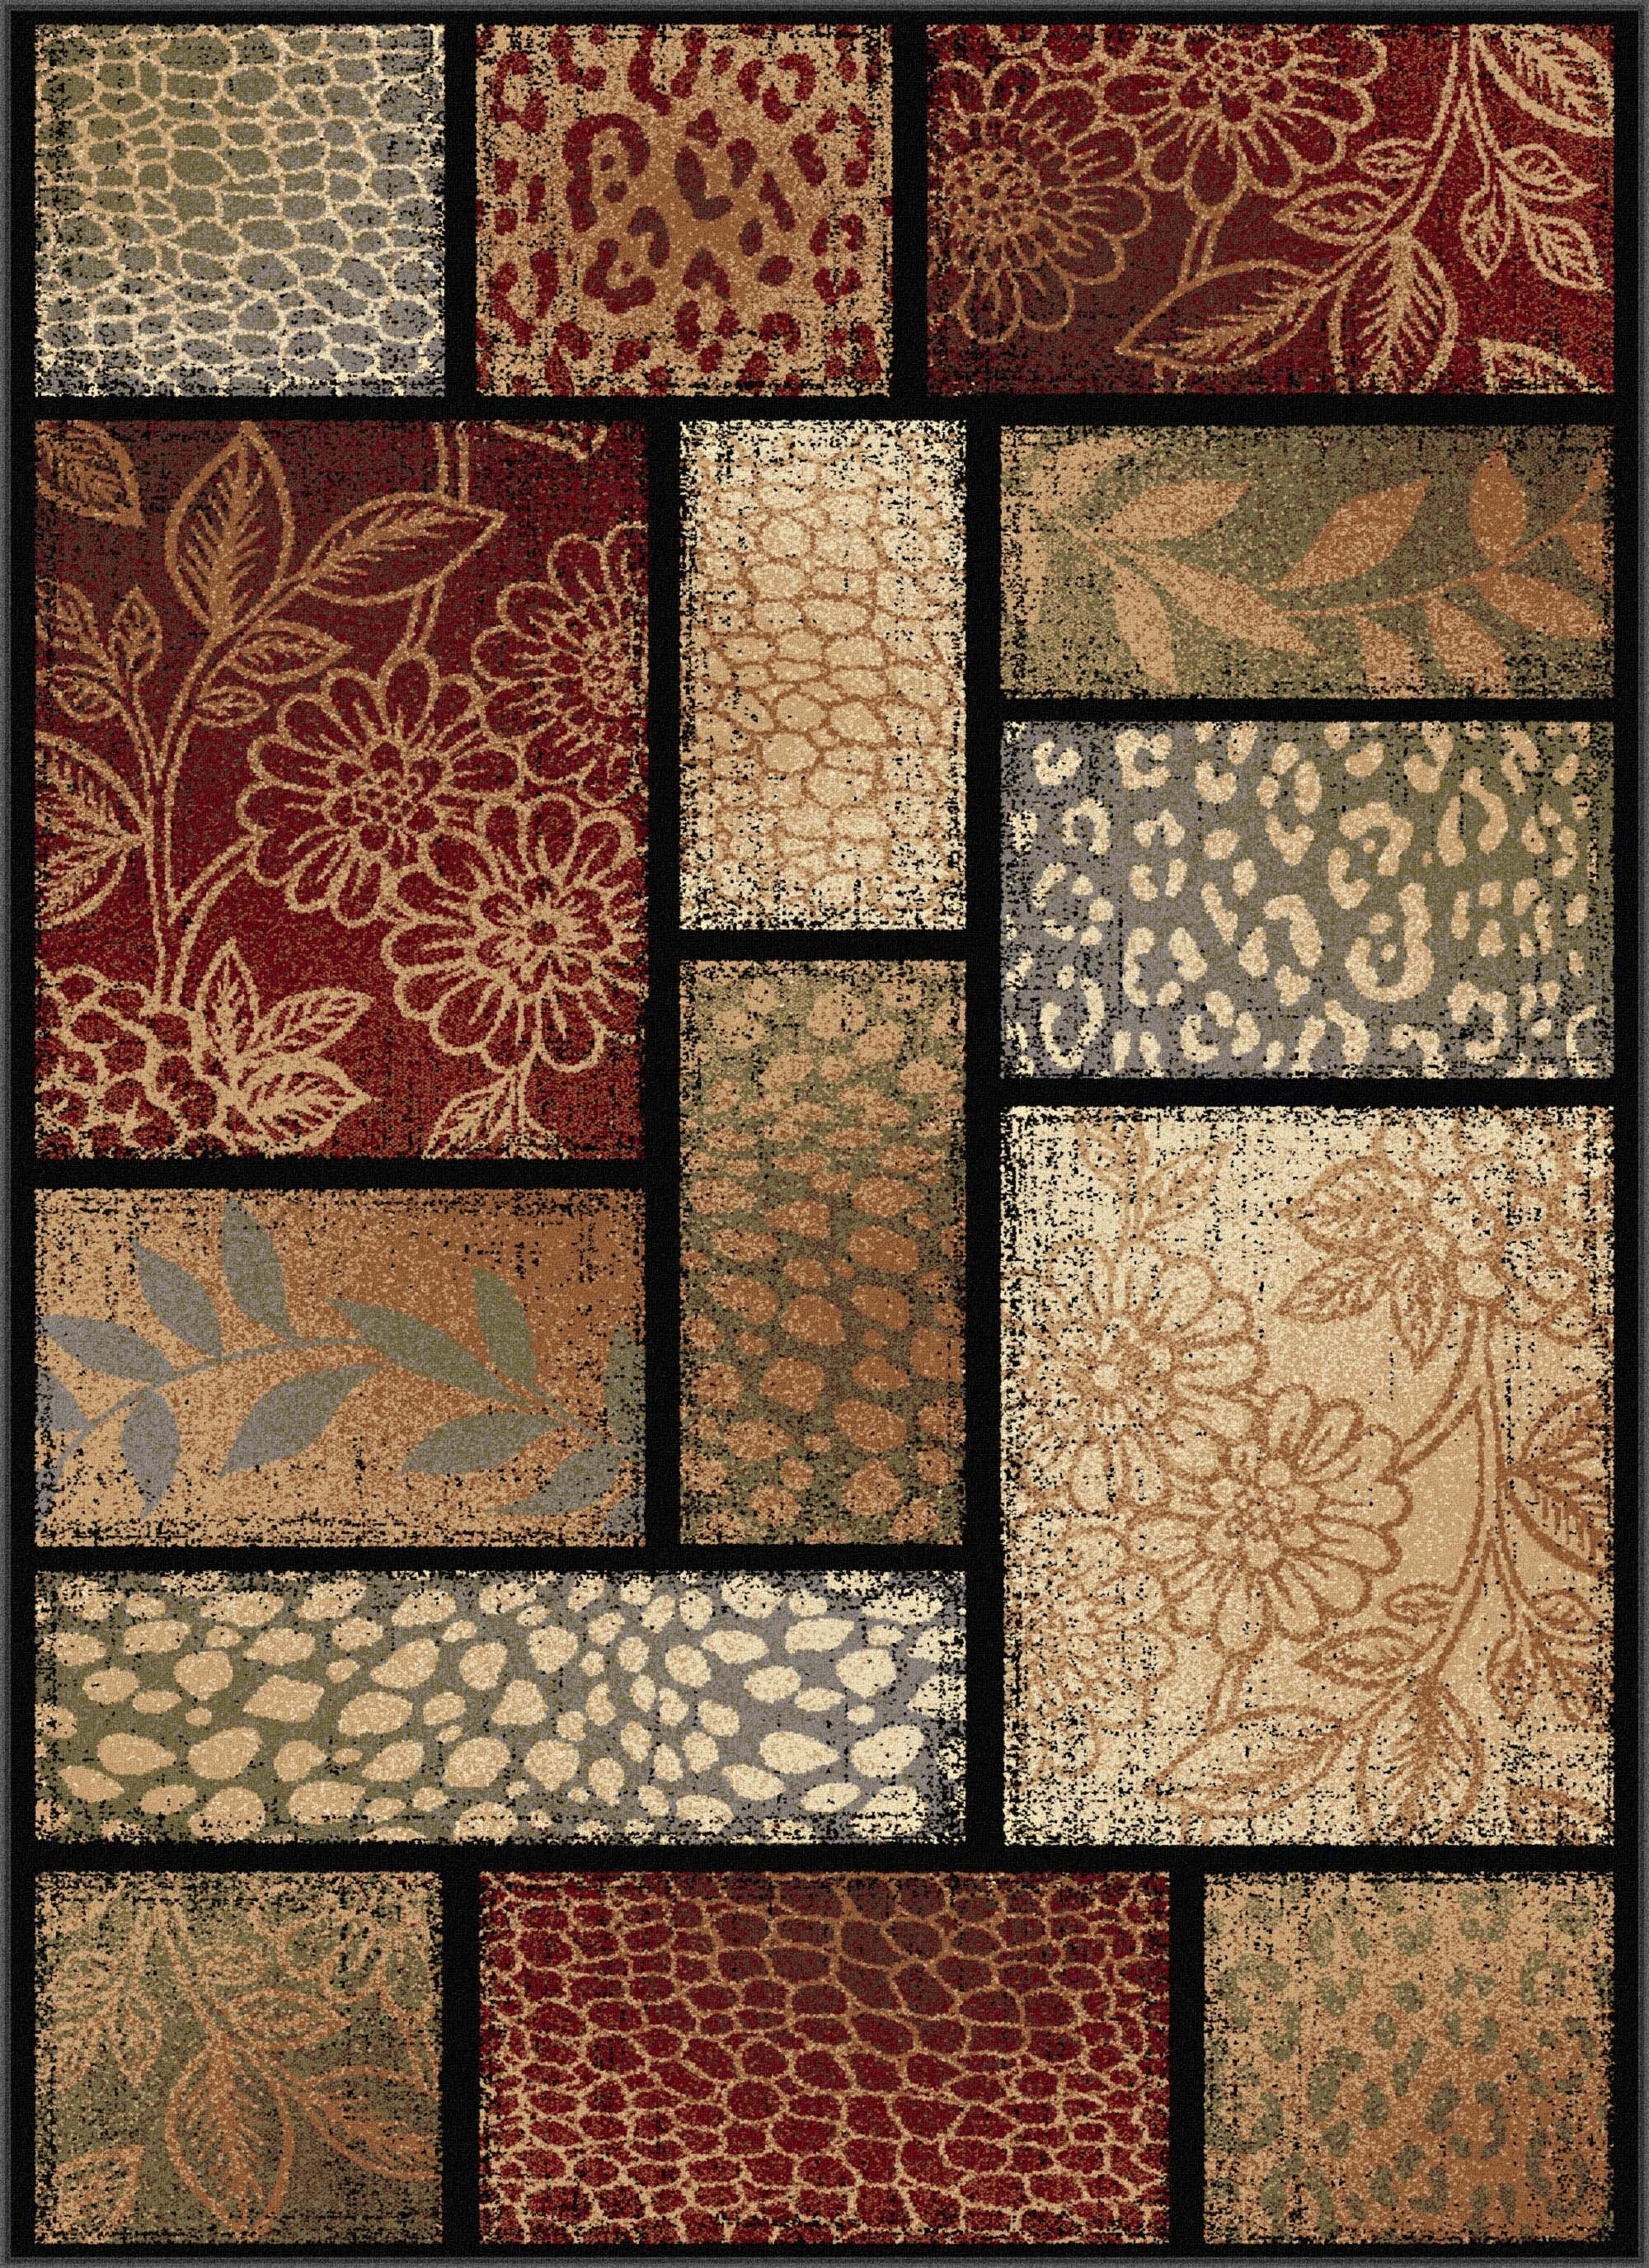 Lares Red Multi Nature Mix Rug Rug Size: 7'10'' x 10'3''